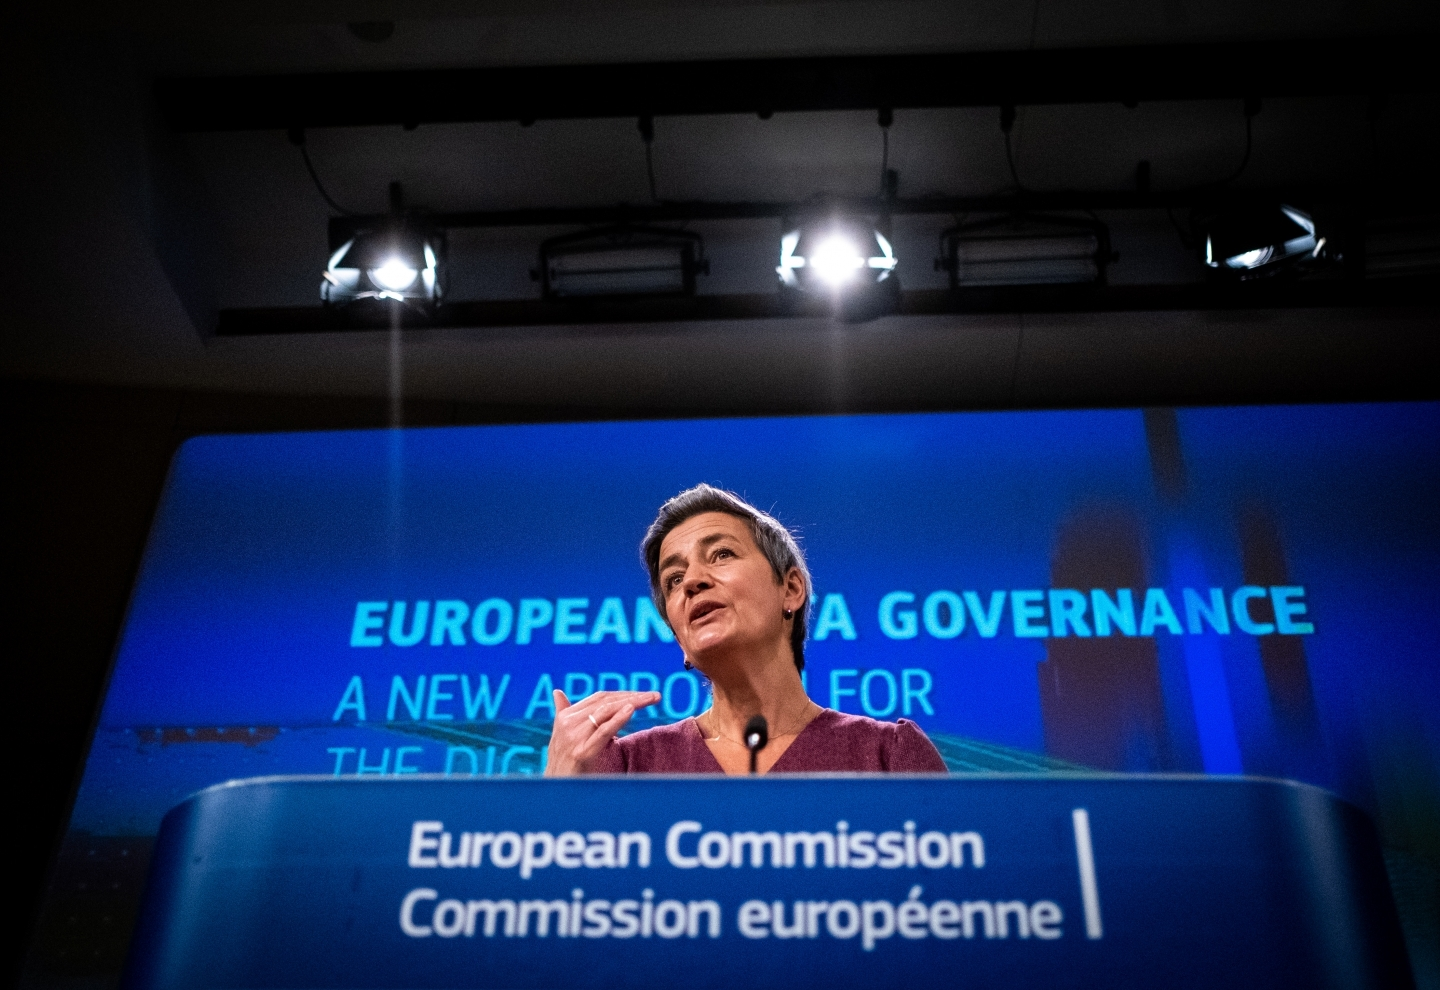 Margarethe Vestager speaks during a press conference on the Data Governance Act on November 25, 2020. (Reuters/Martin Bertrand)